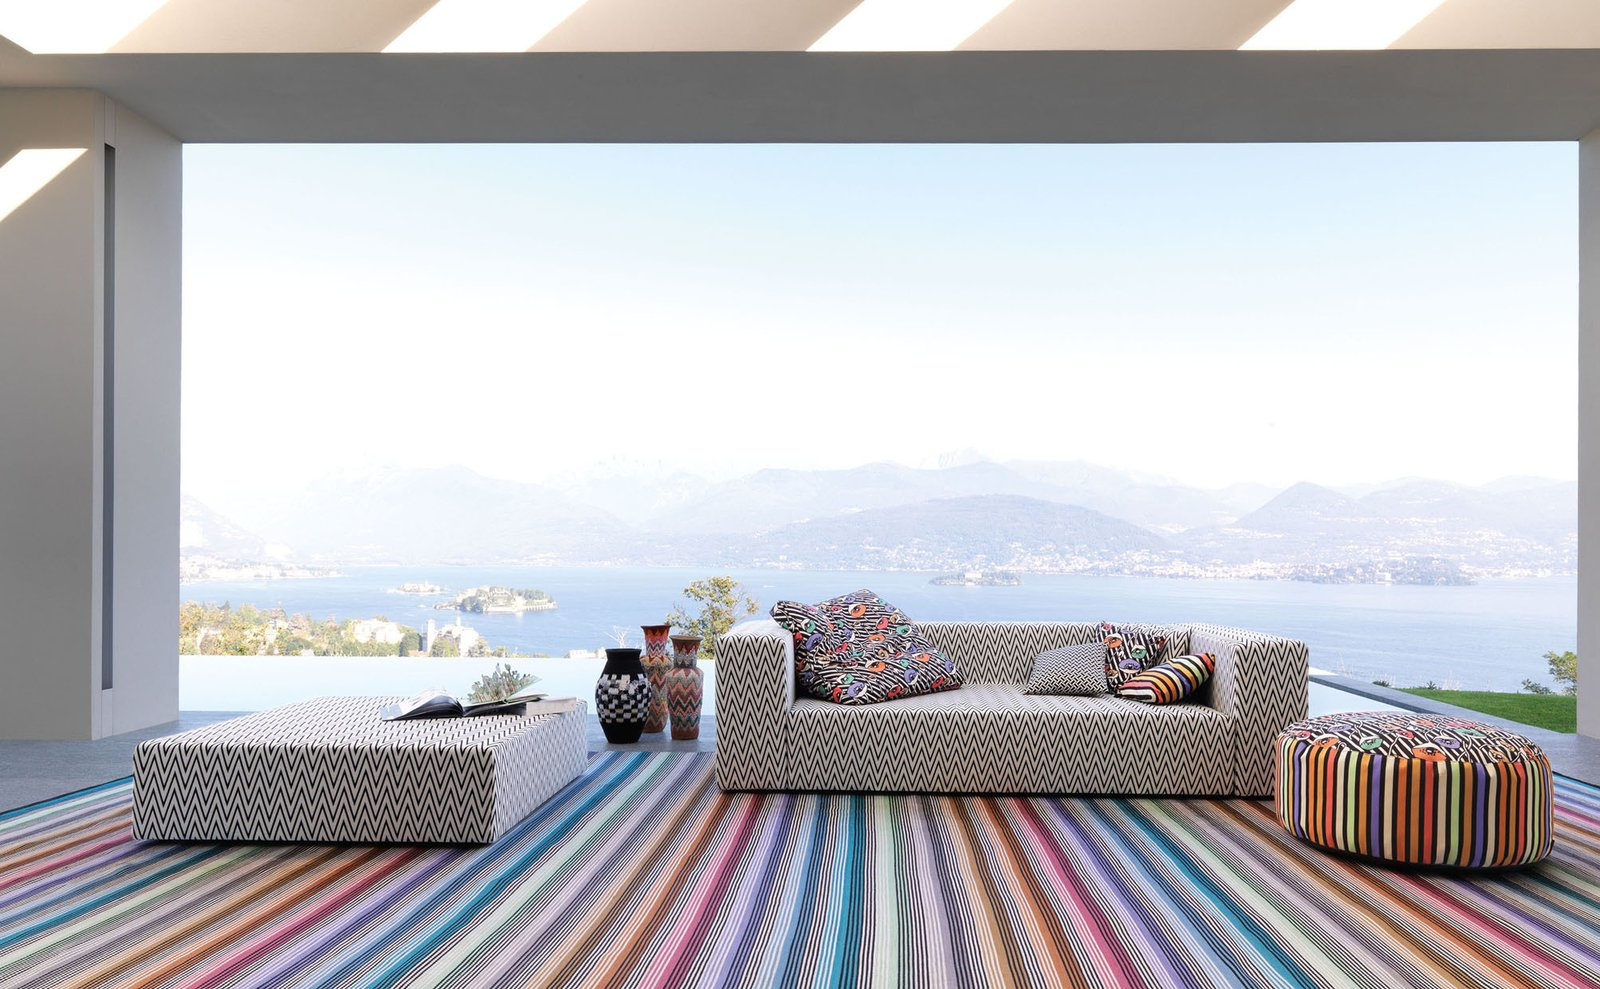 The Nap seating collection in the white chevron Rivas print.  Outdoor